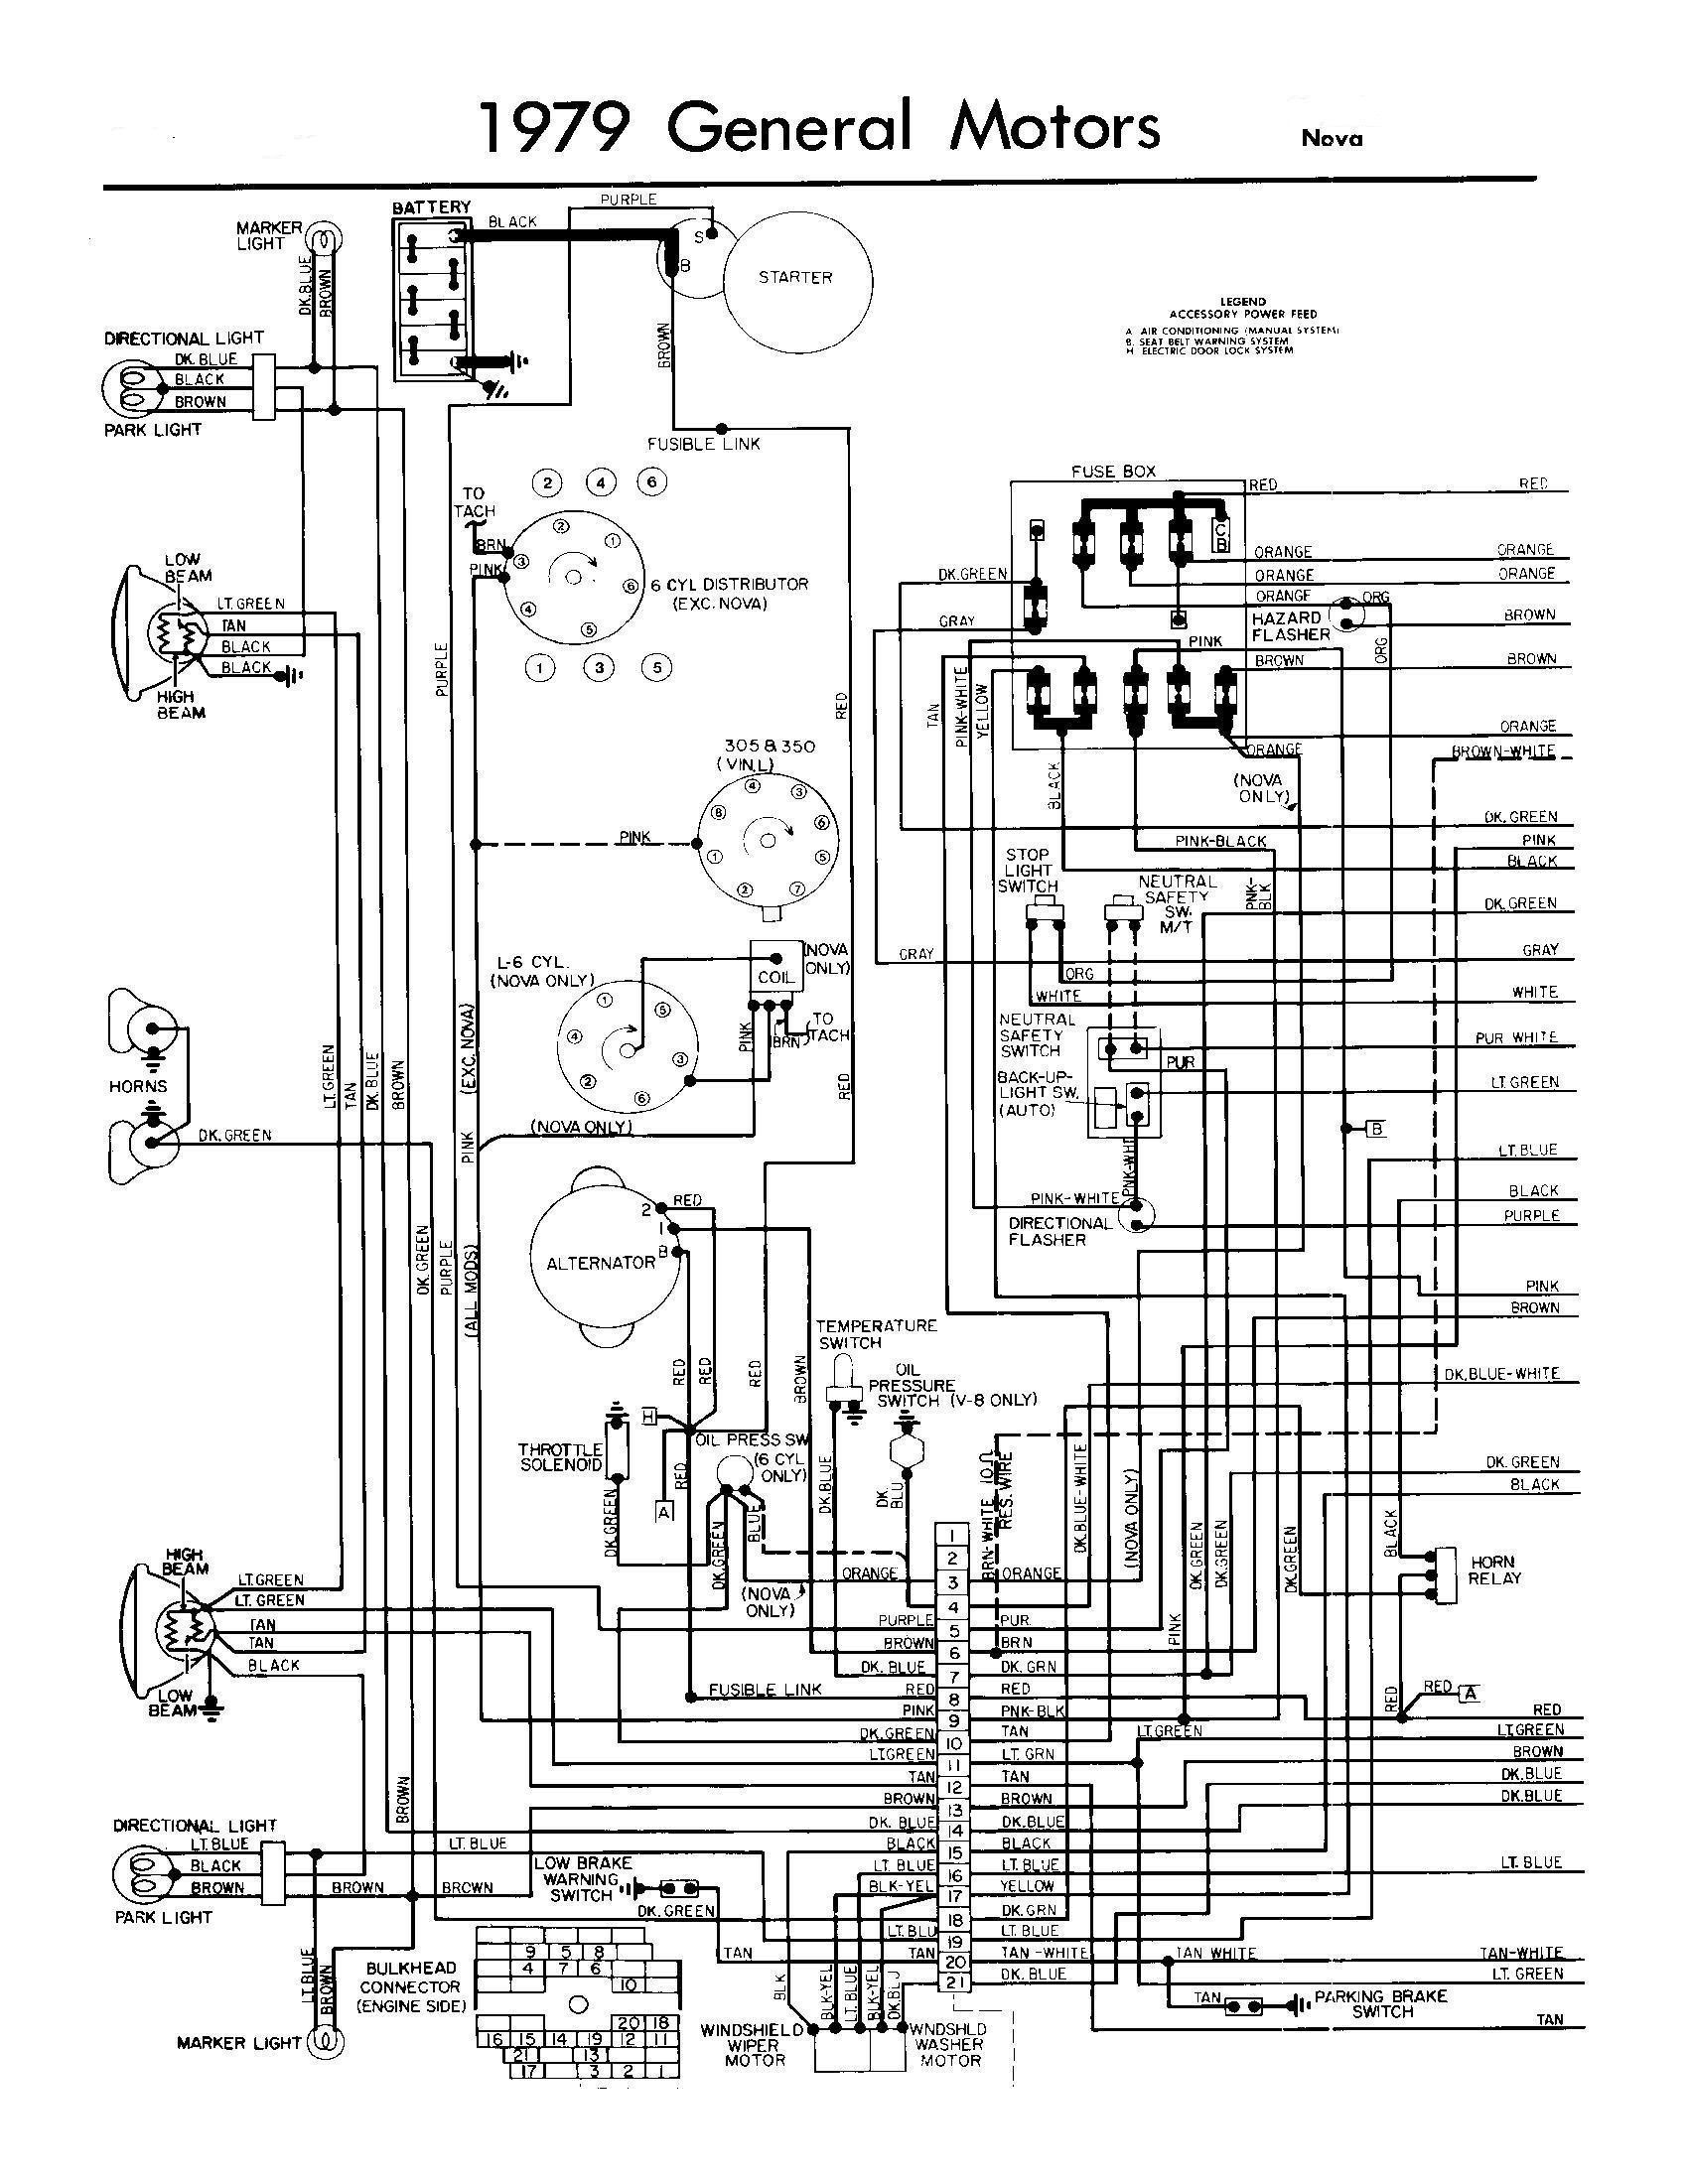 Omc Javelin Wiring Diagram - Schematics Online on